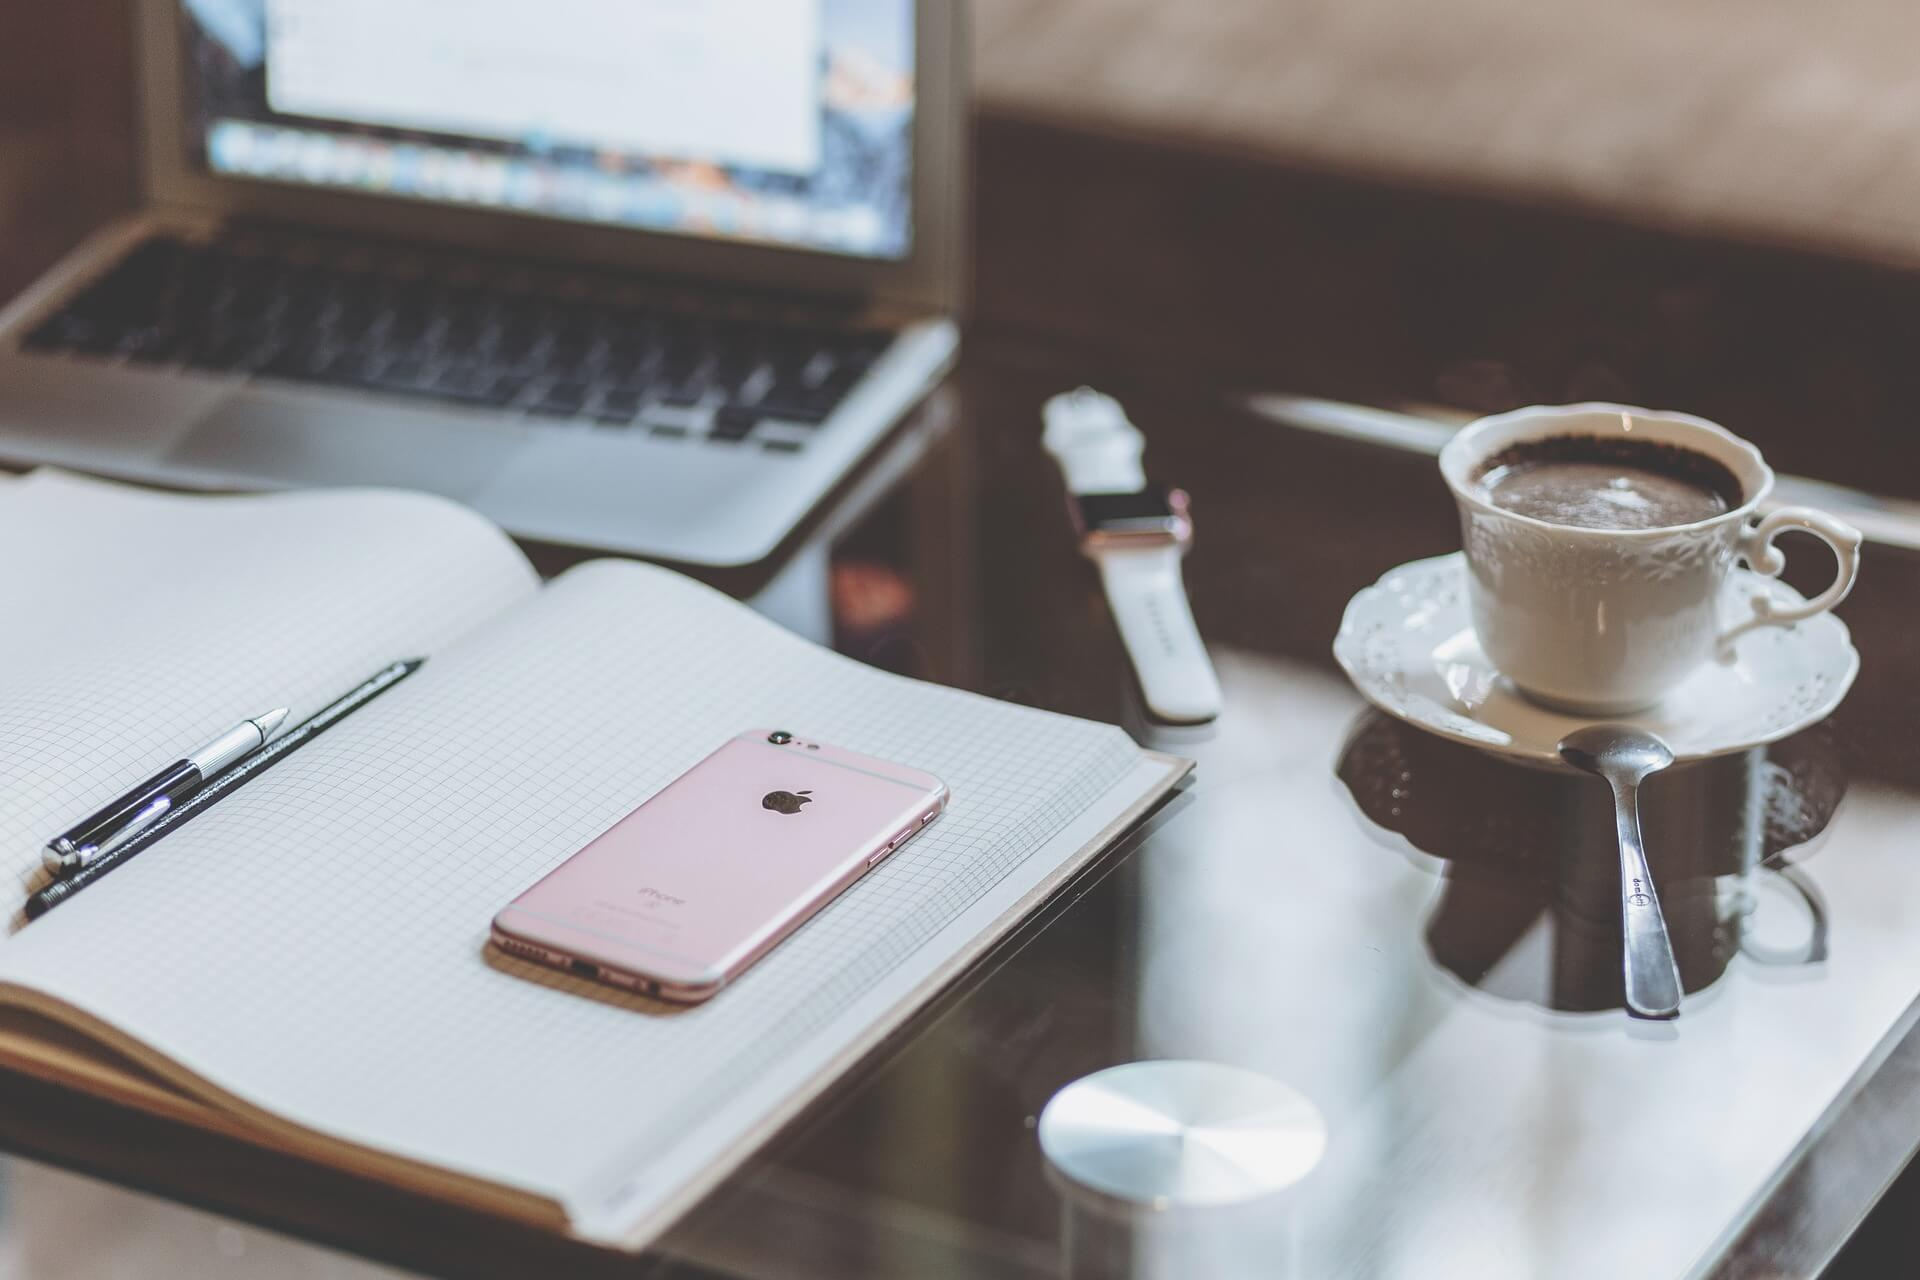 wearables-soar-in-q2-2015-as-apple-watch-aims-for-the-top-image-cultofandroidcomwp-contentuploads201505apple-watch-6_1